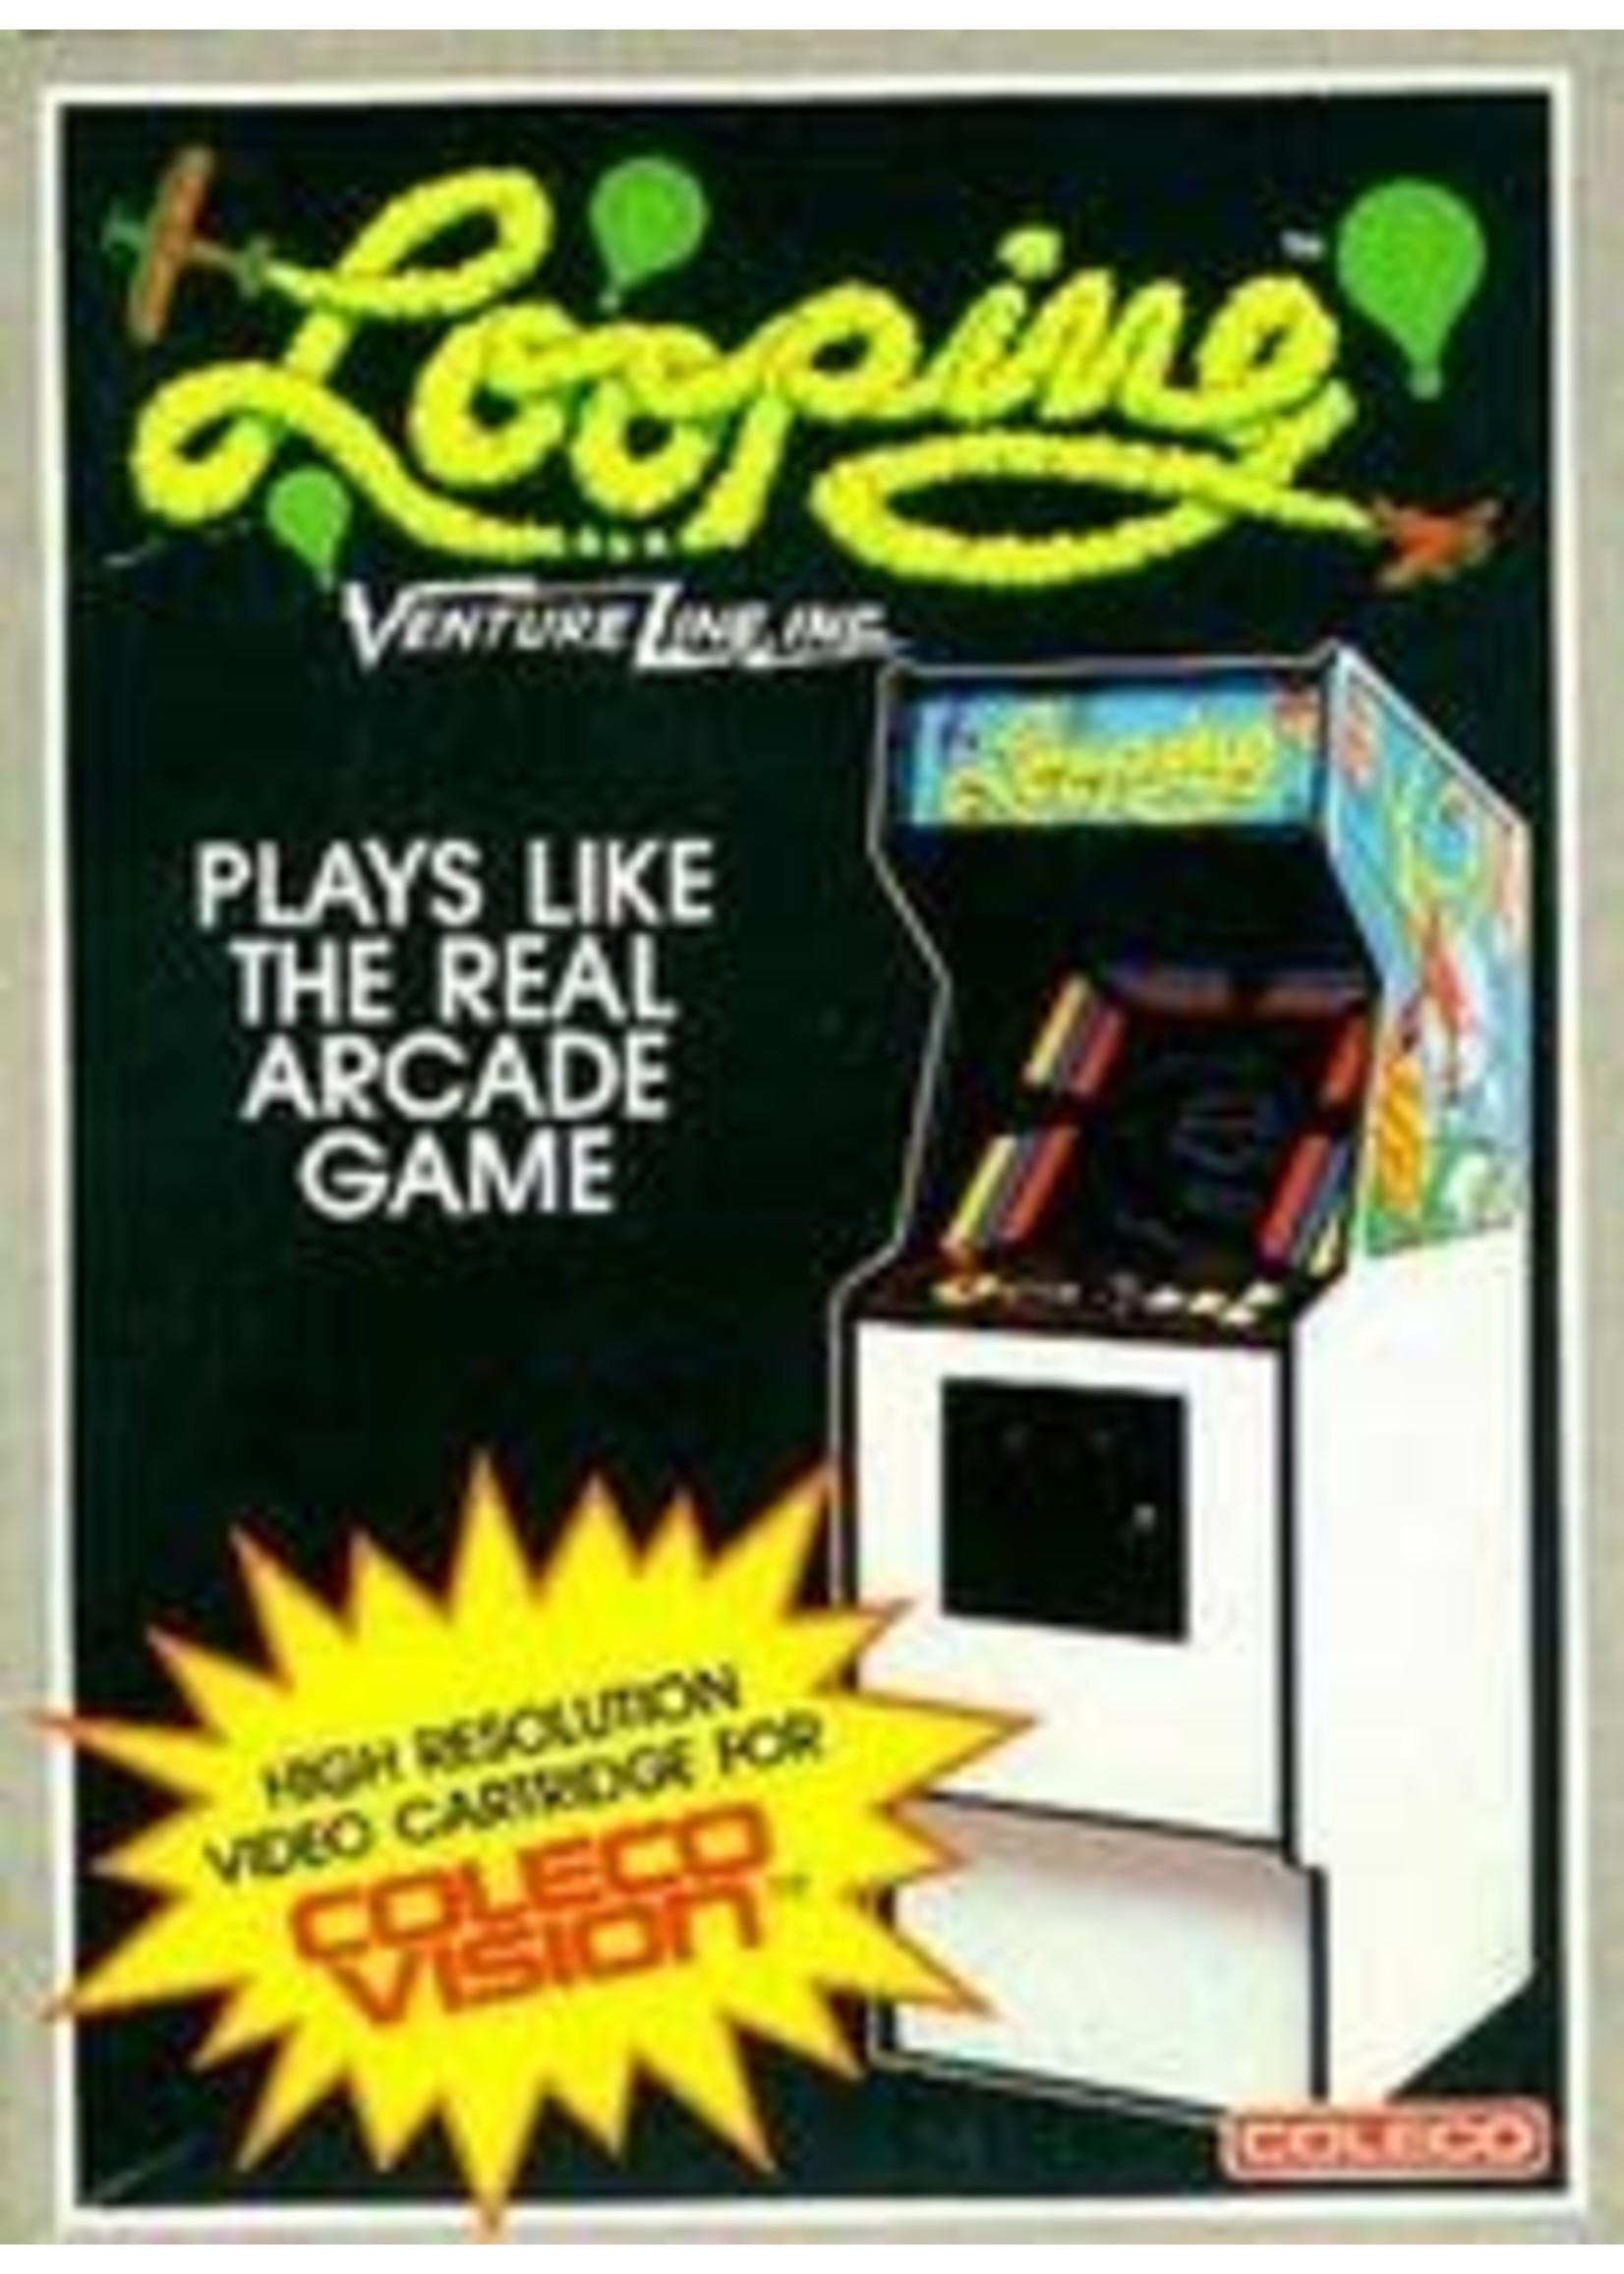 Looping Colecovision